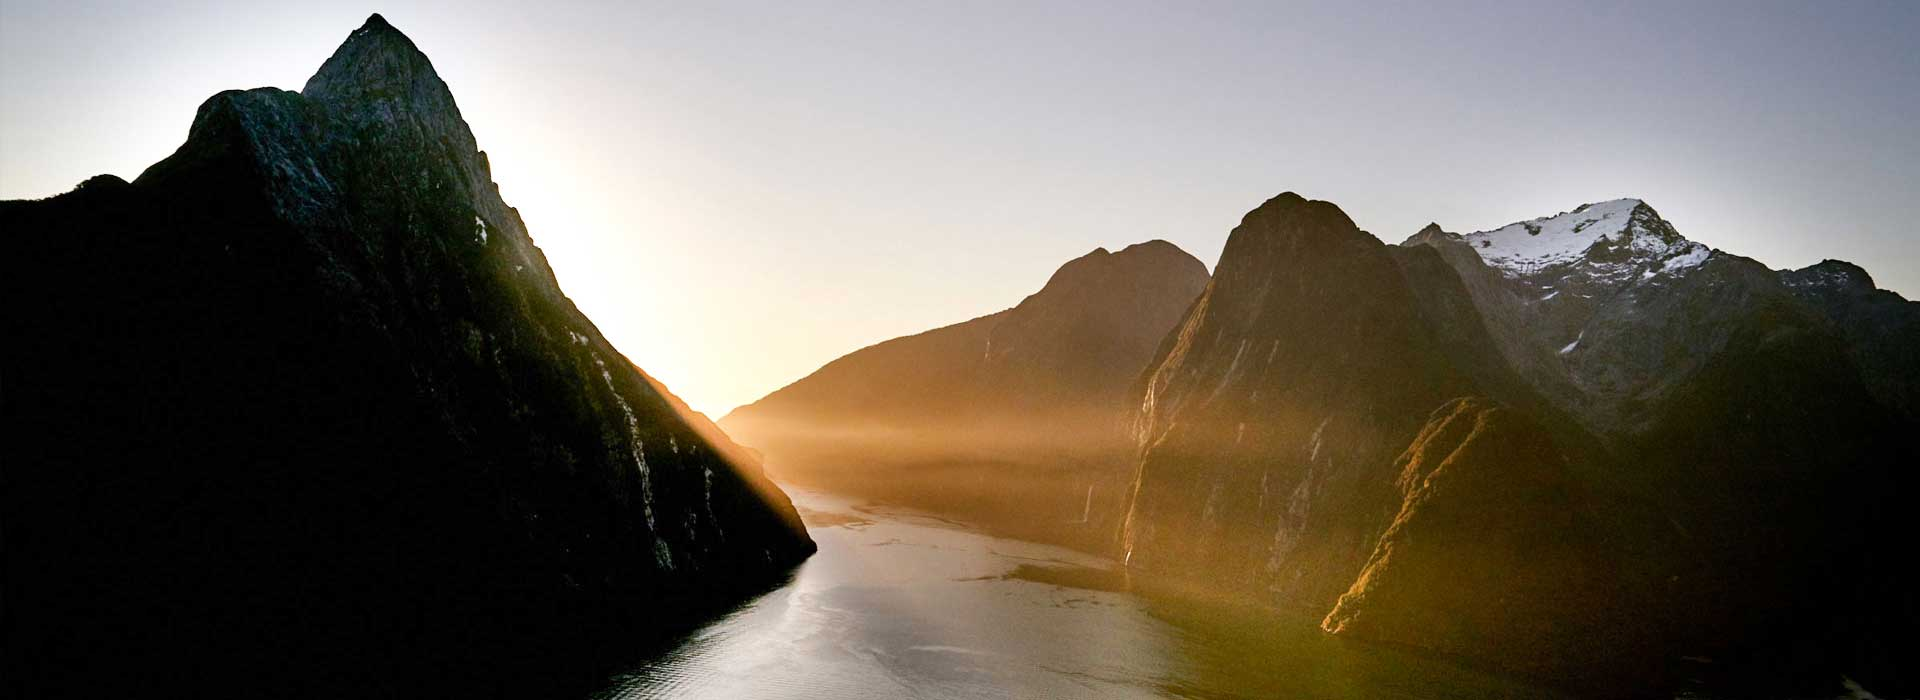 The Milford Sound Heli Experience